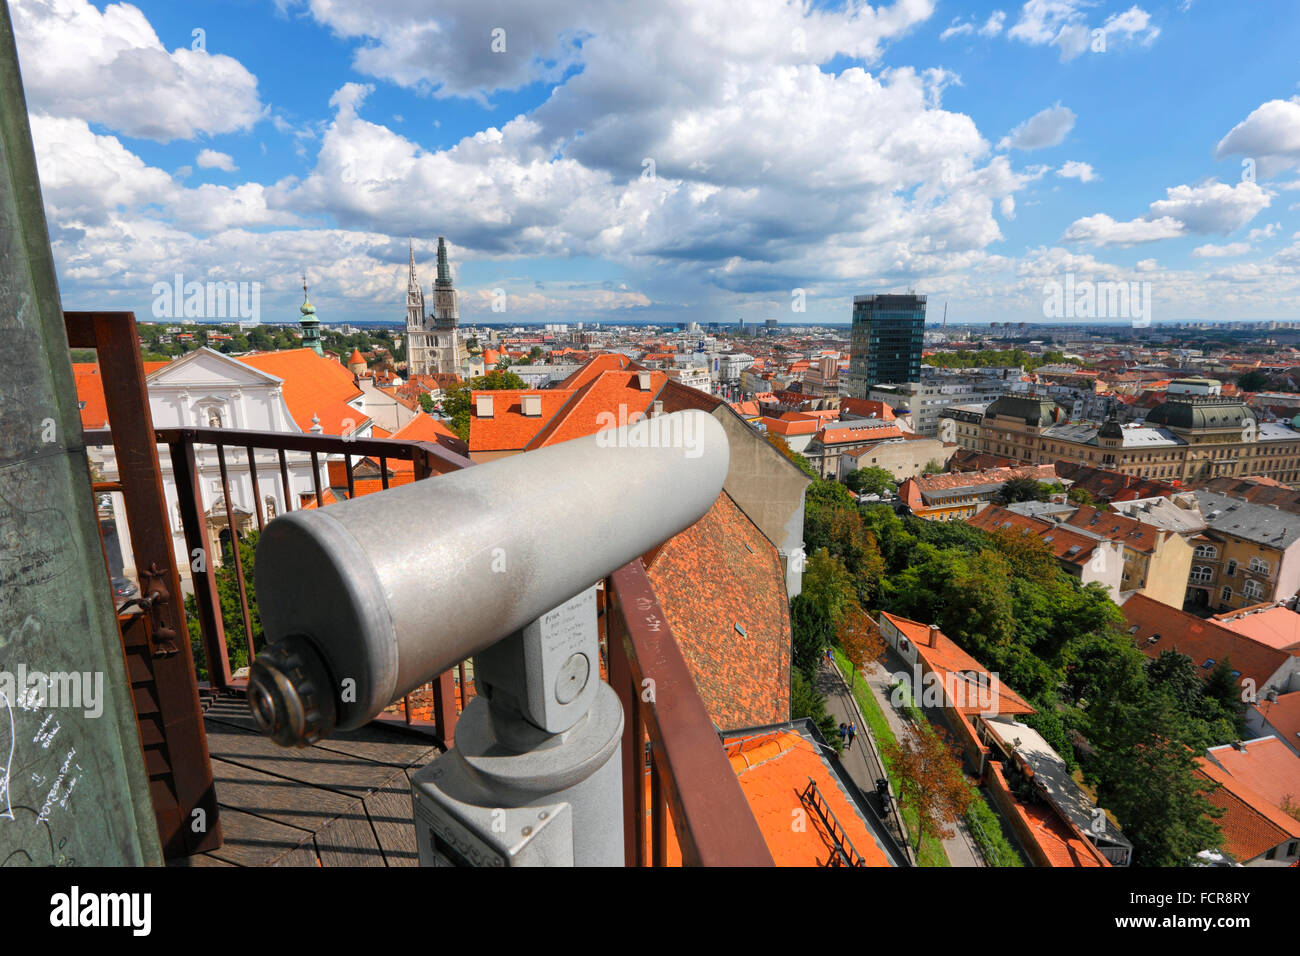 Zagreb city with binocular in front. - Stock Image